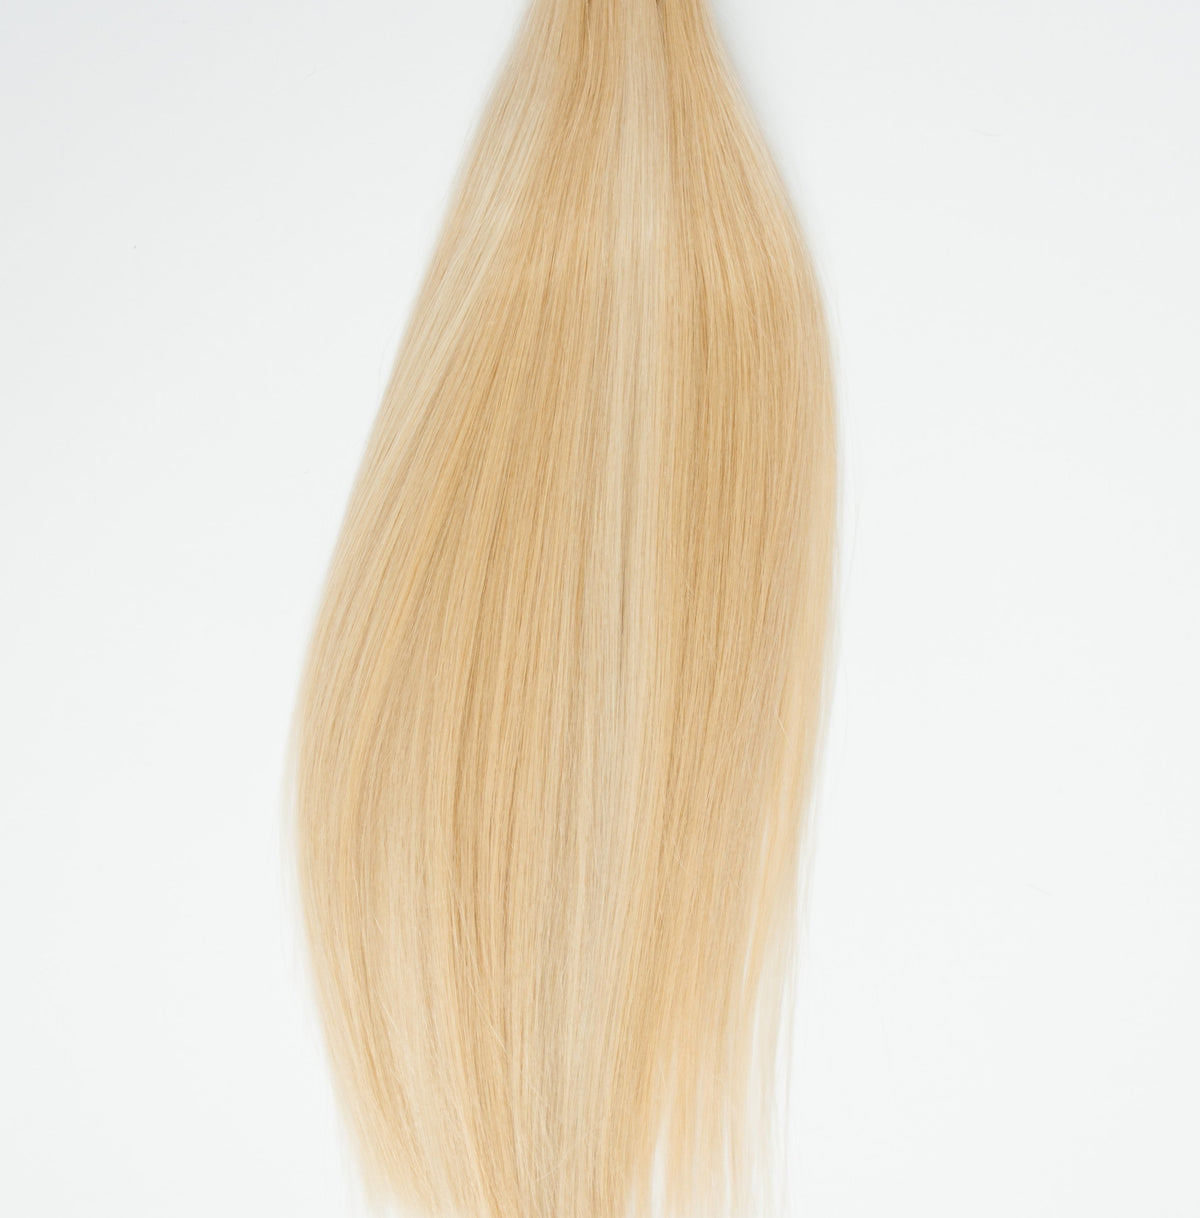 I-Tip - Laced Hair I-Tip Extensions Dimensional #16/22 (Buttercream)